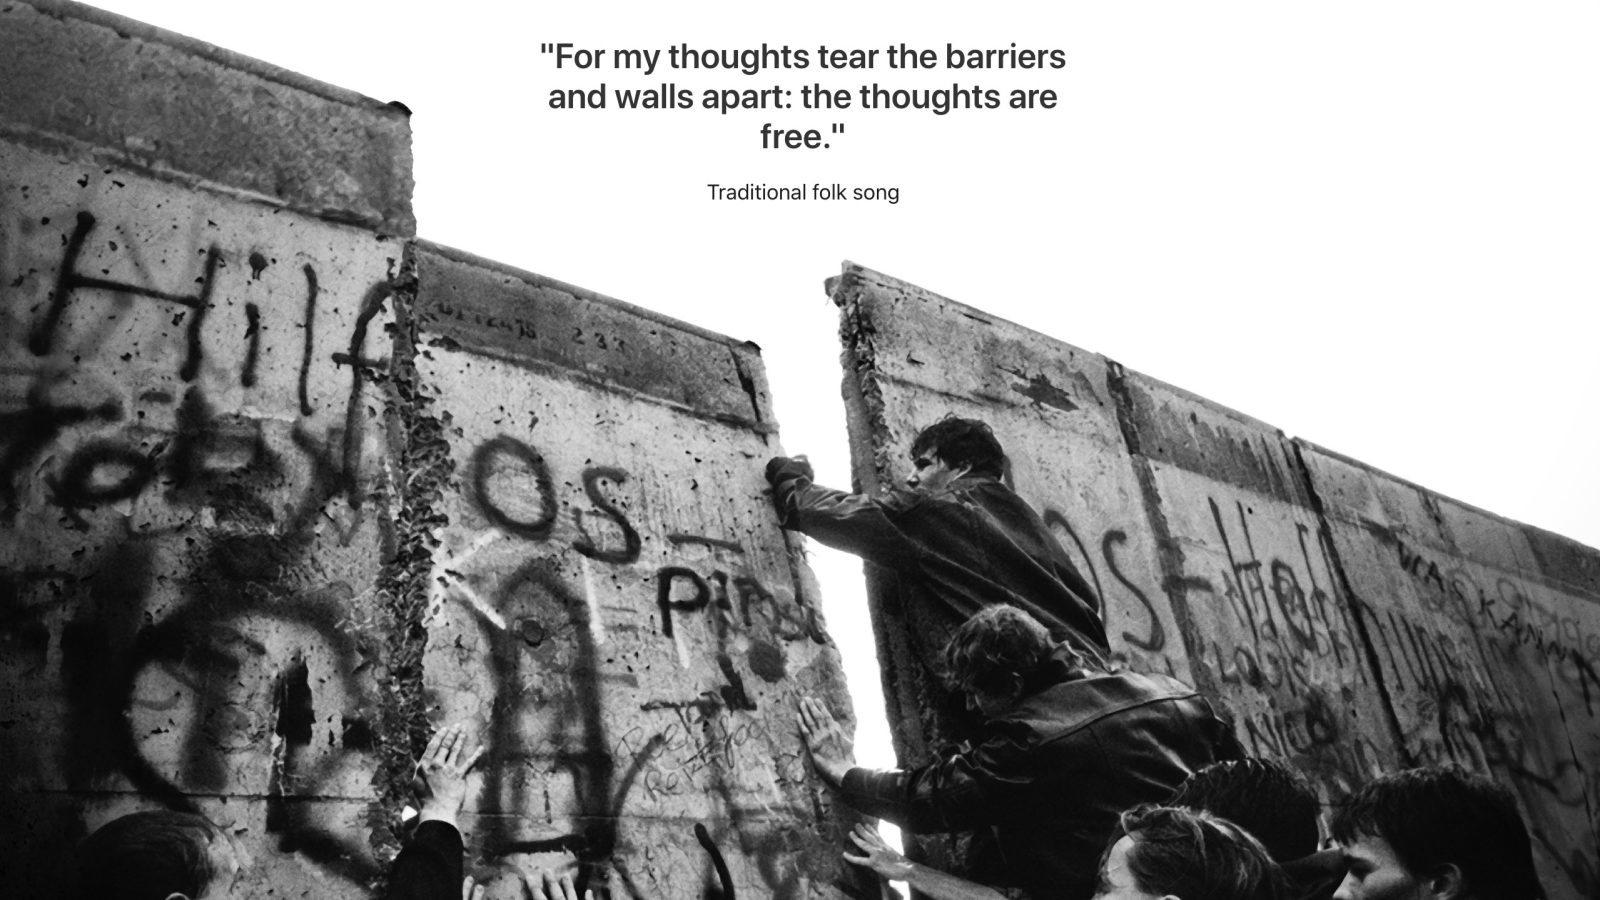 Apple marks fall of Berlin Wall anniversary with special tribute on German Apple․com